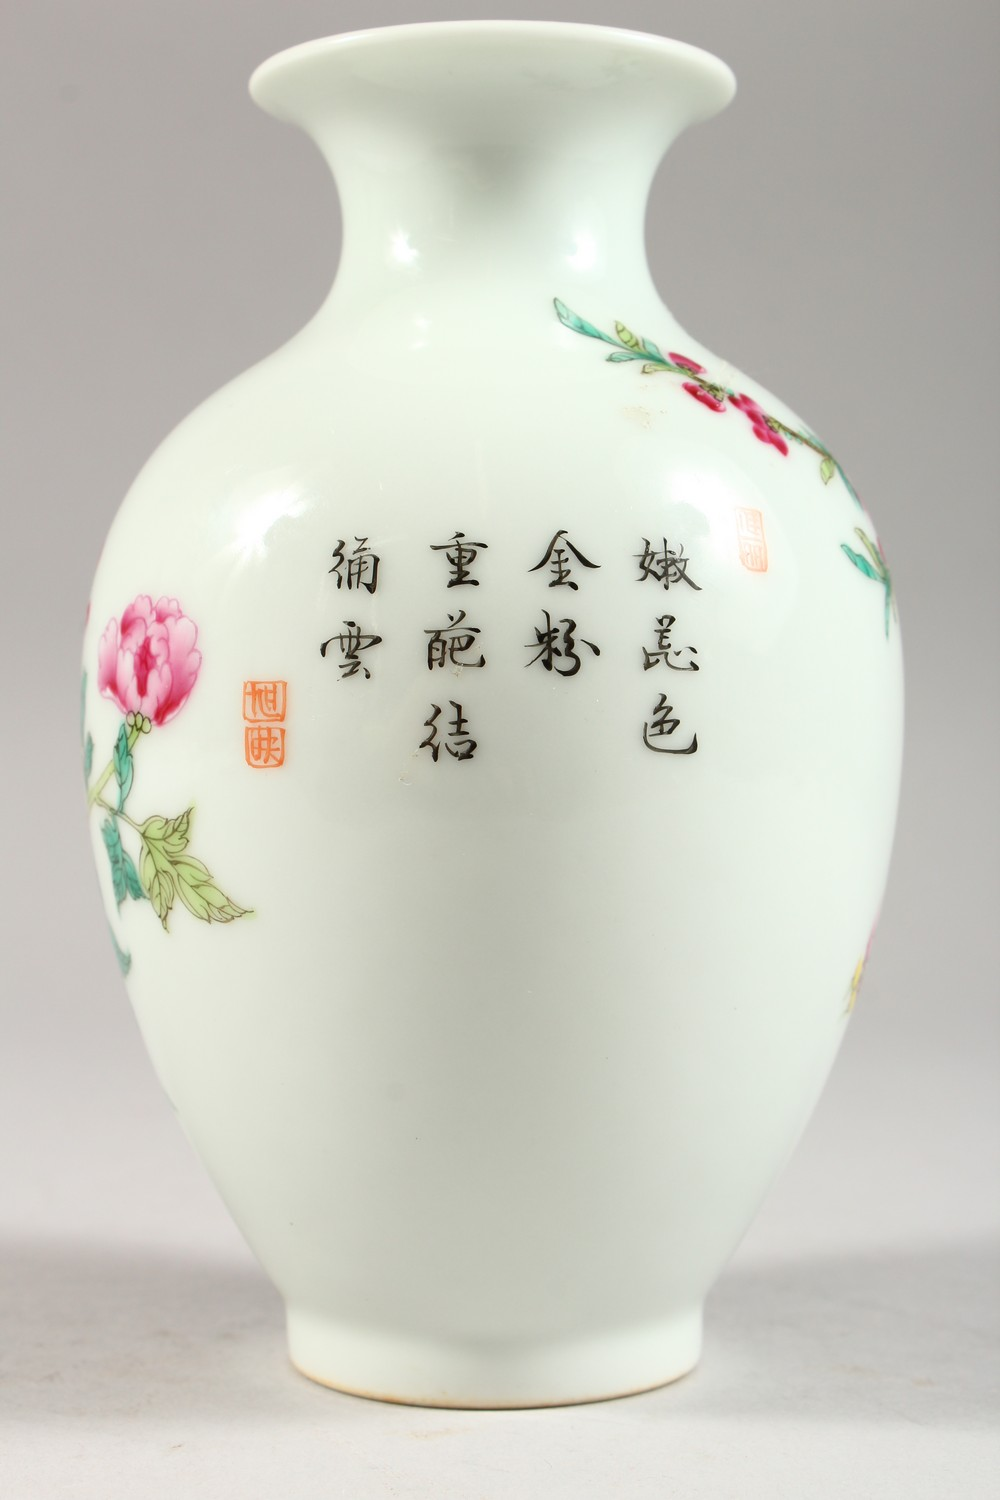 A GOOD CHINESE REPUBLIC STYLE FAMILLE ROSE PORCELAIN VASE, the body decorated with scenes of birds - Image 4 of 8